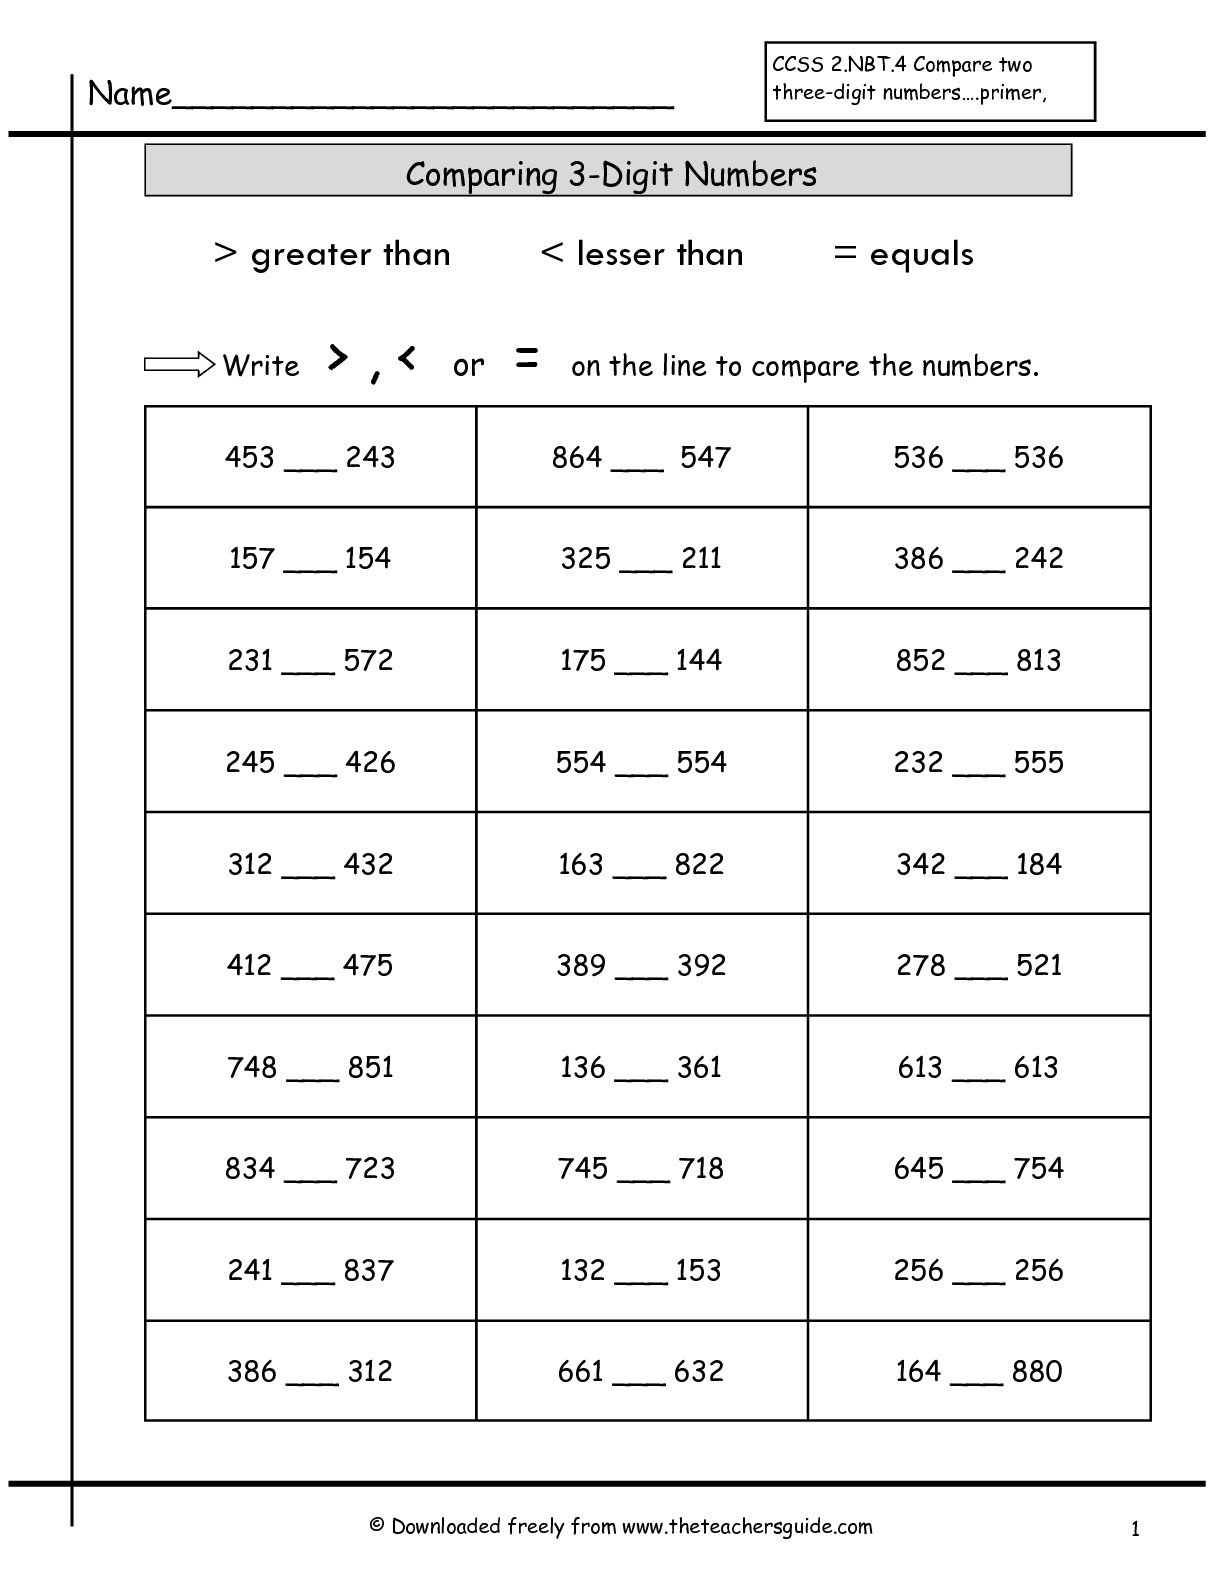 11 Best Images Of Comparing Place Value Worksheets